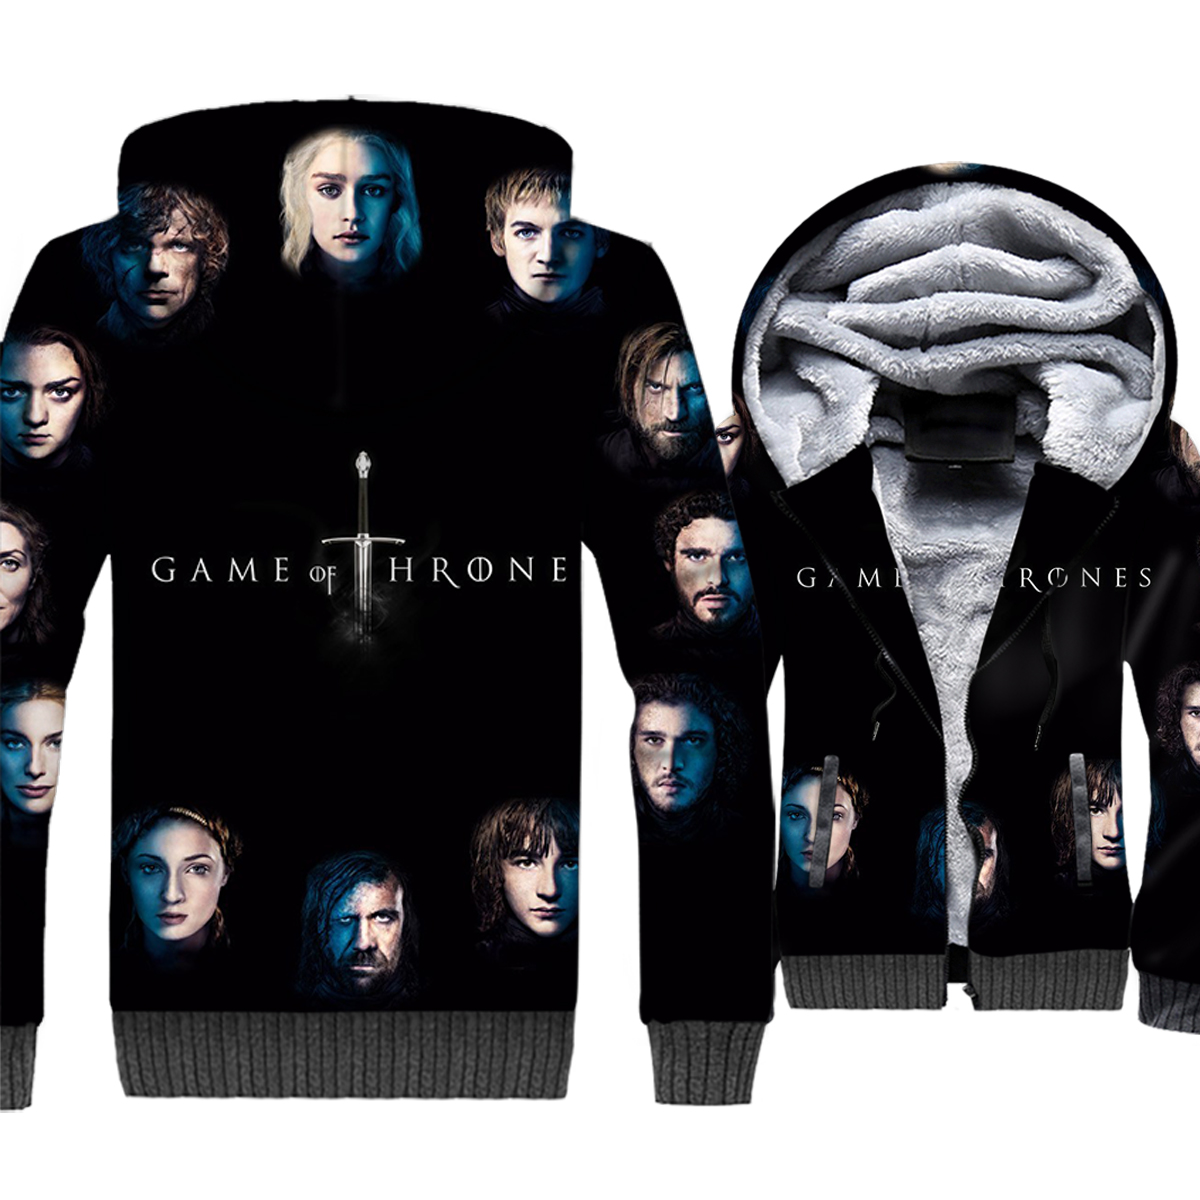 Game of Thrones Hoodie Men 3D Jacket House Stark Sweatshirt 2018 Winter Thick Fleece Warm Zipper Coat Jackets Hip Hop Streetwear